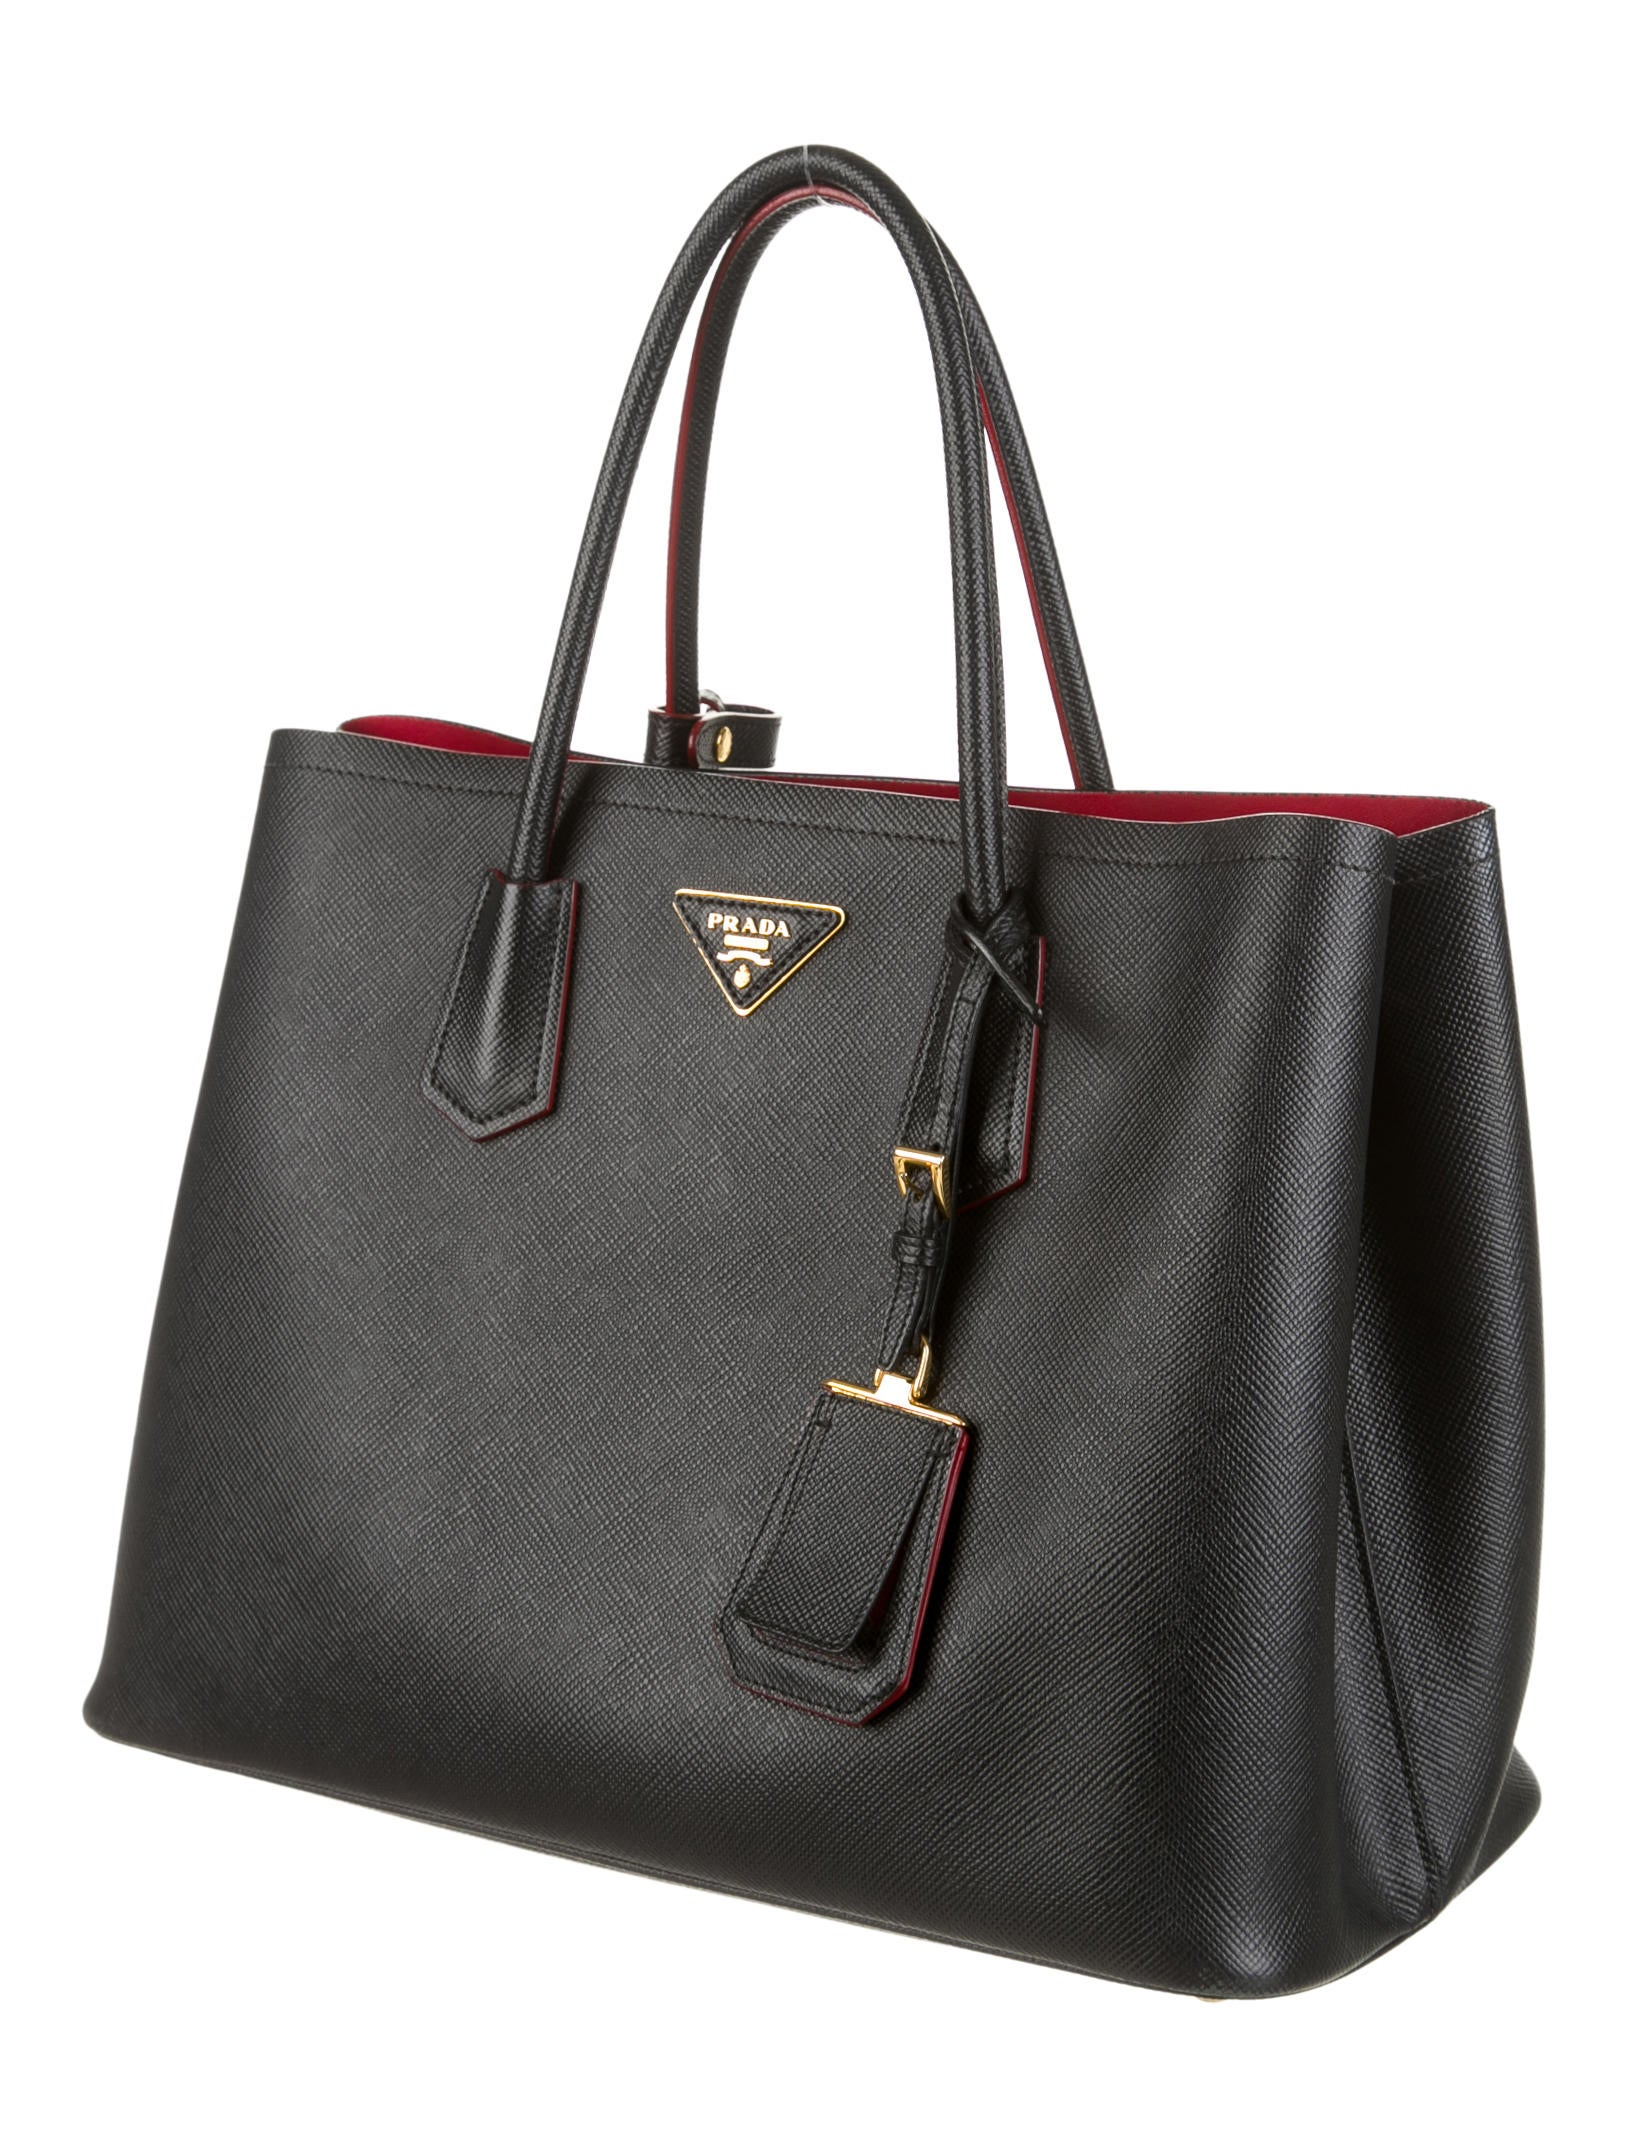 36566eb8d047 Prada Double Bag Consignment | Stanford Center for Opportunity ...